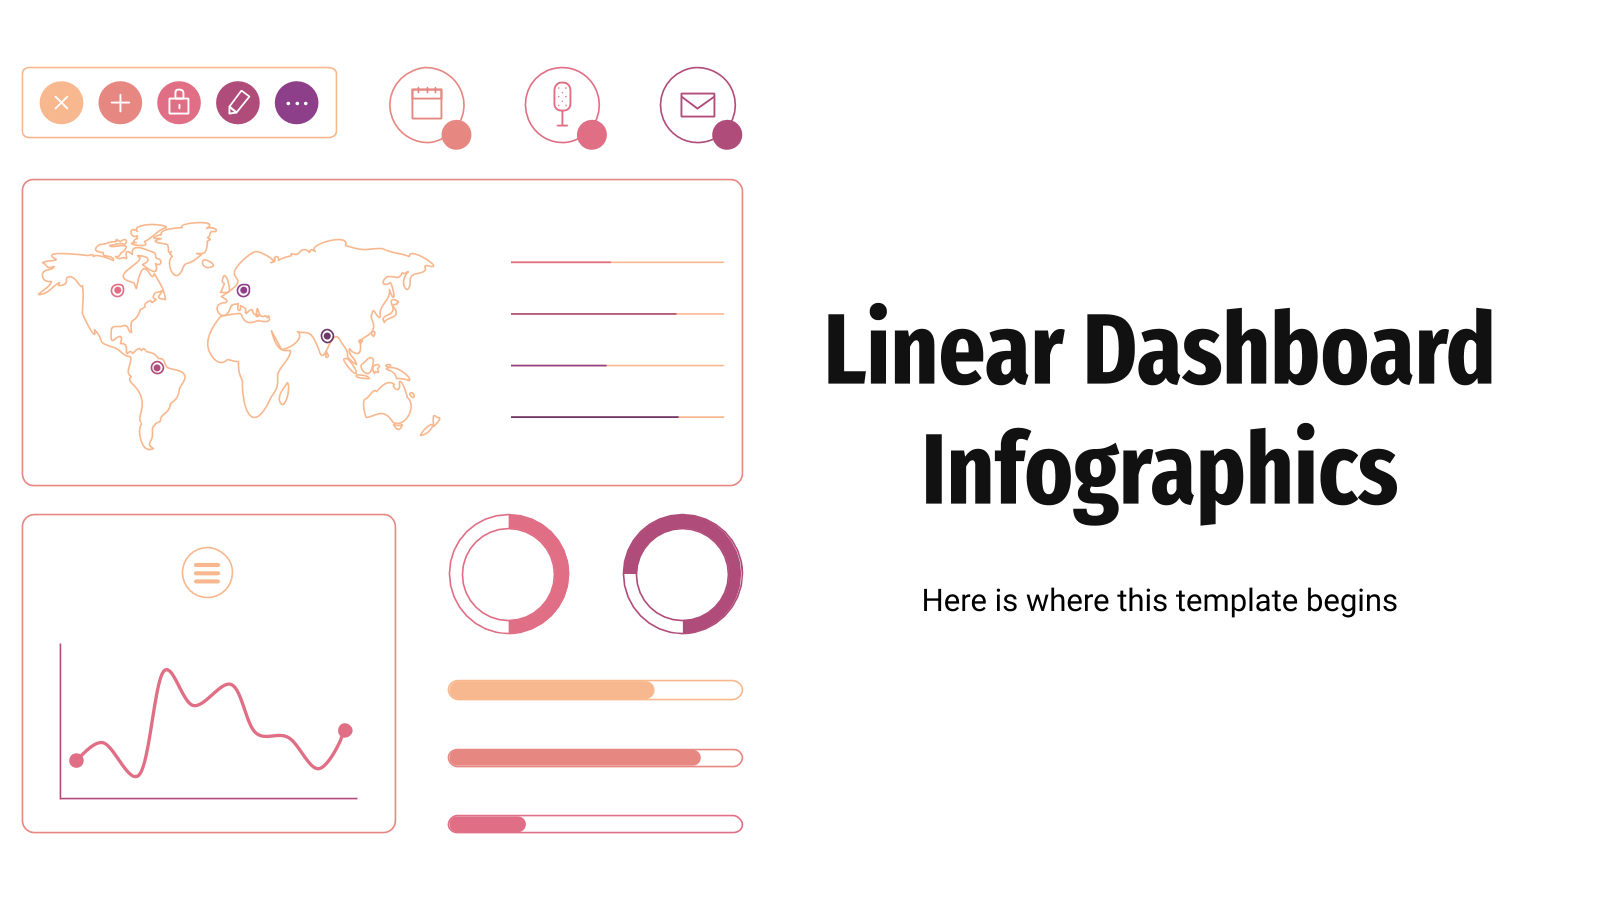 Linear Dashboard Infographics presentation template